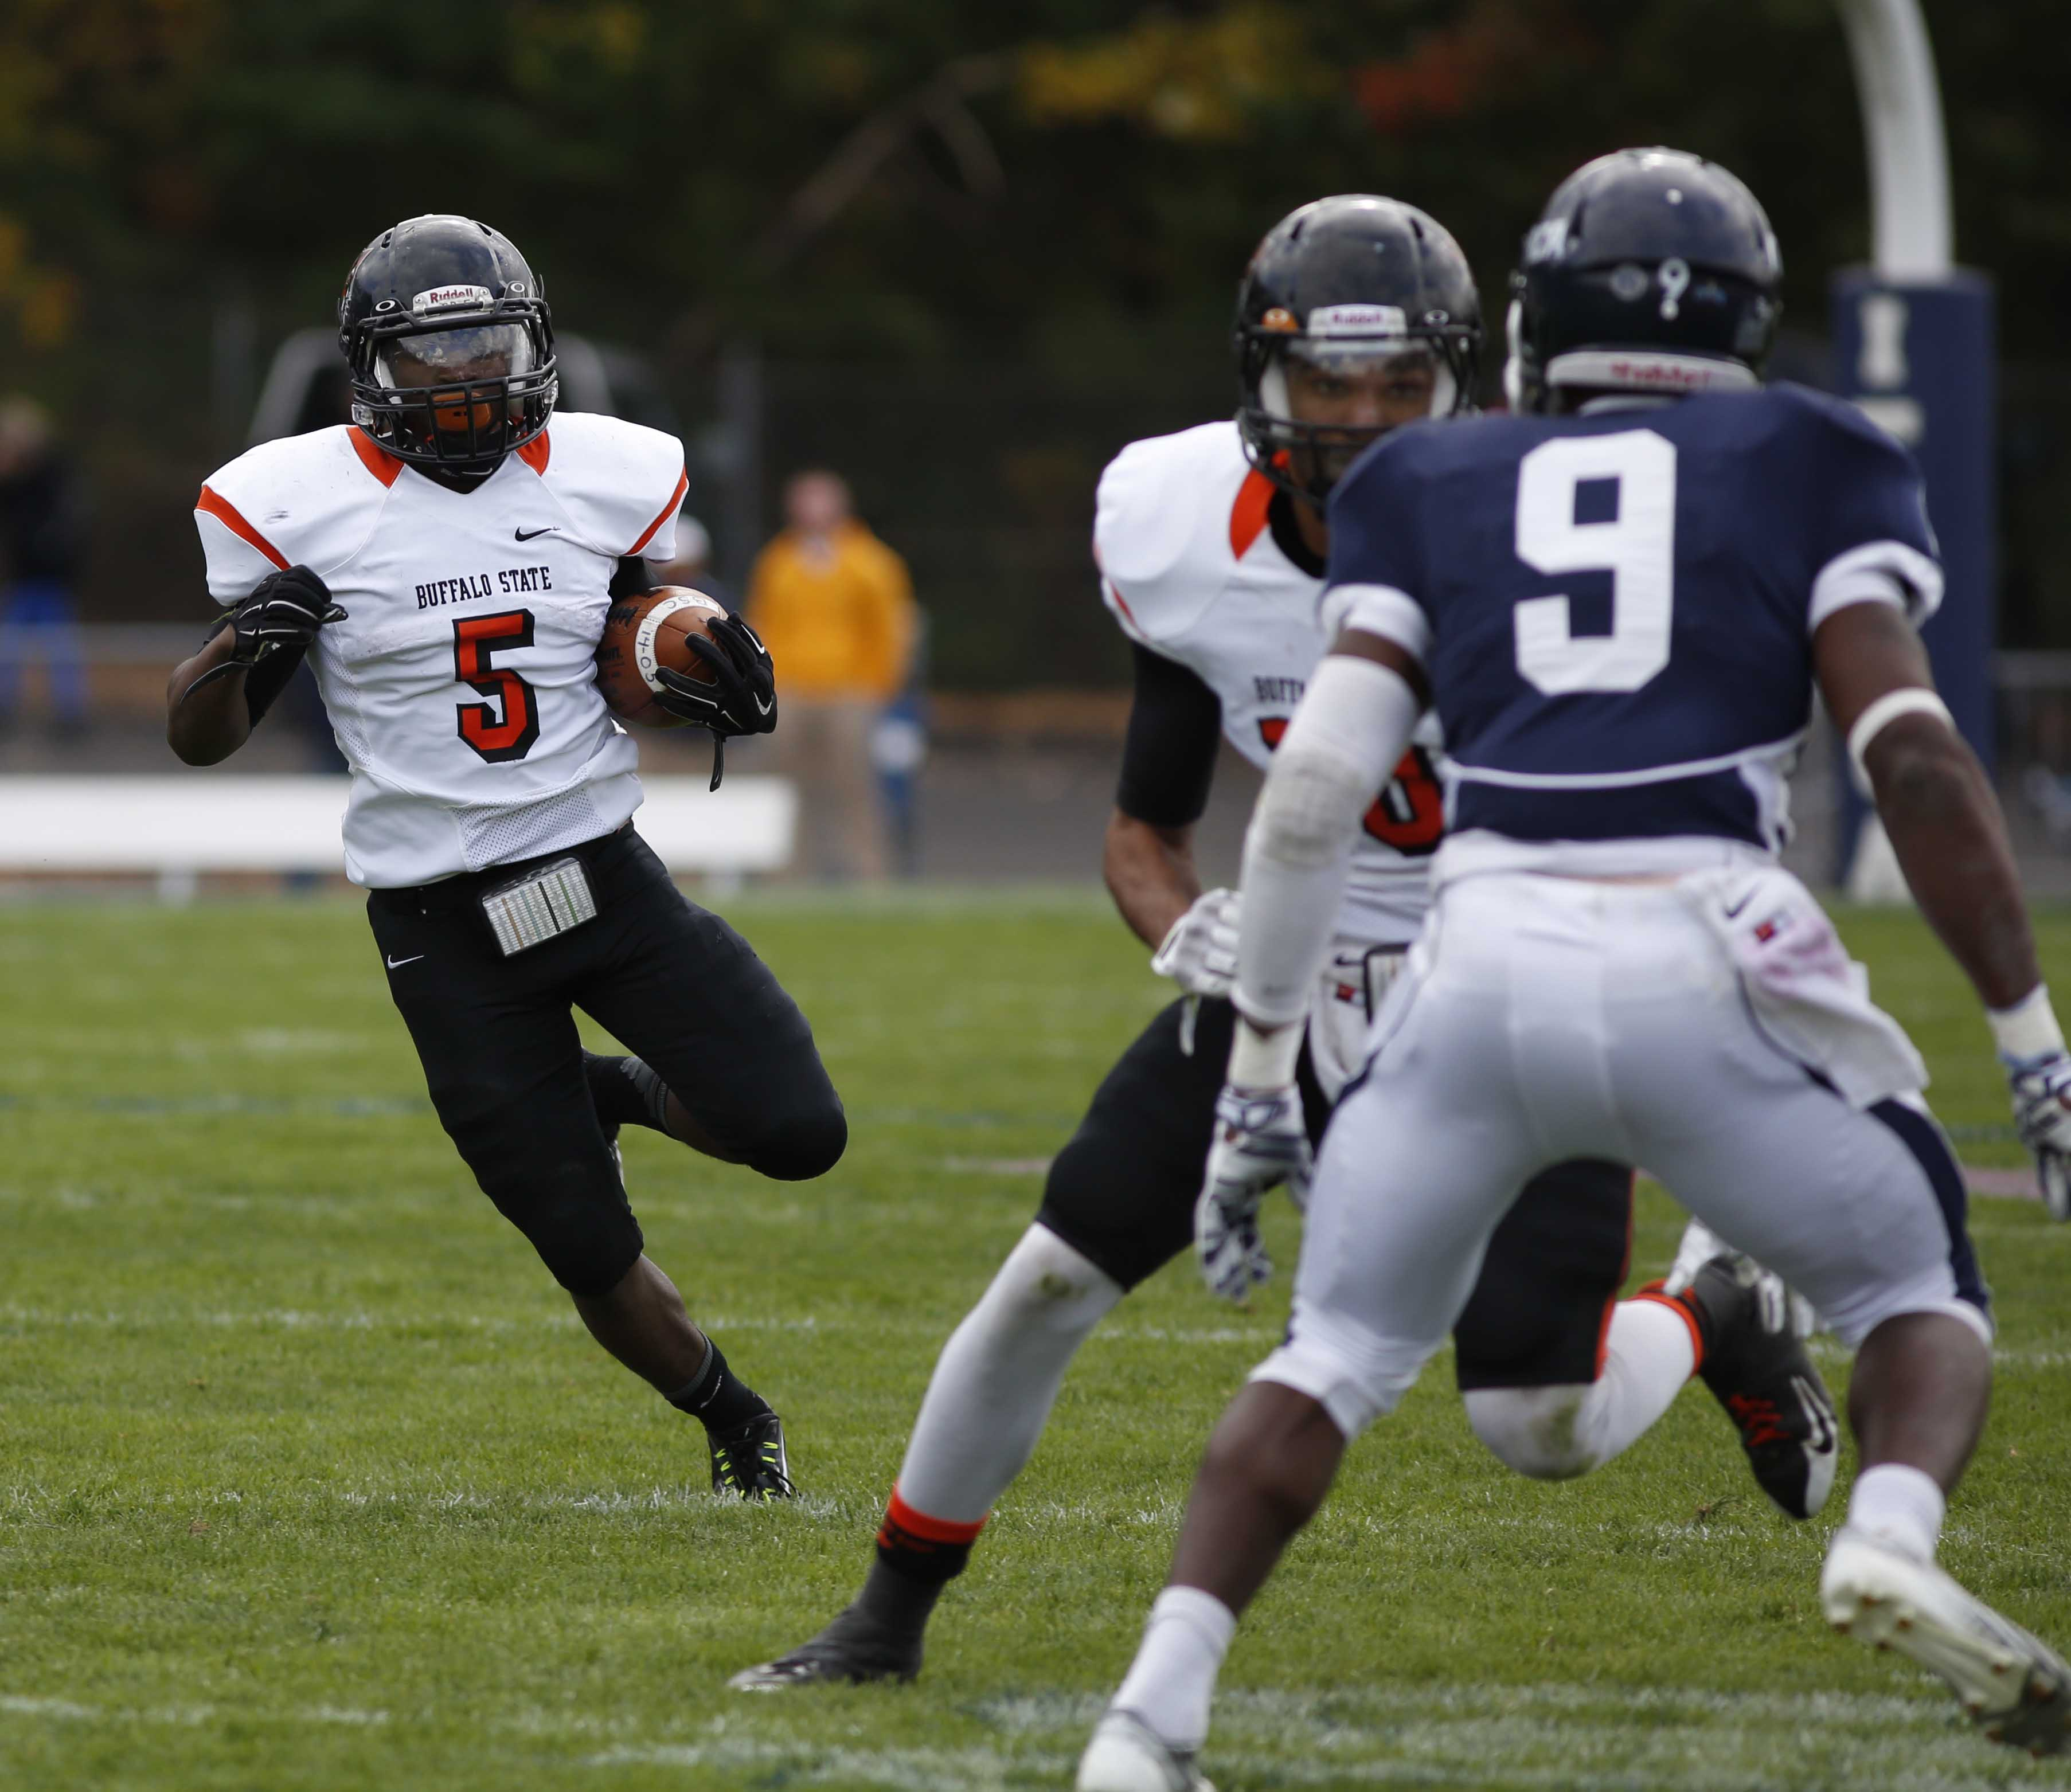 Running back Rich Pete (5) leads the Empire 8 in rushing, averaging 124 yards-per-game.